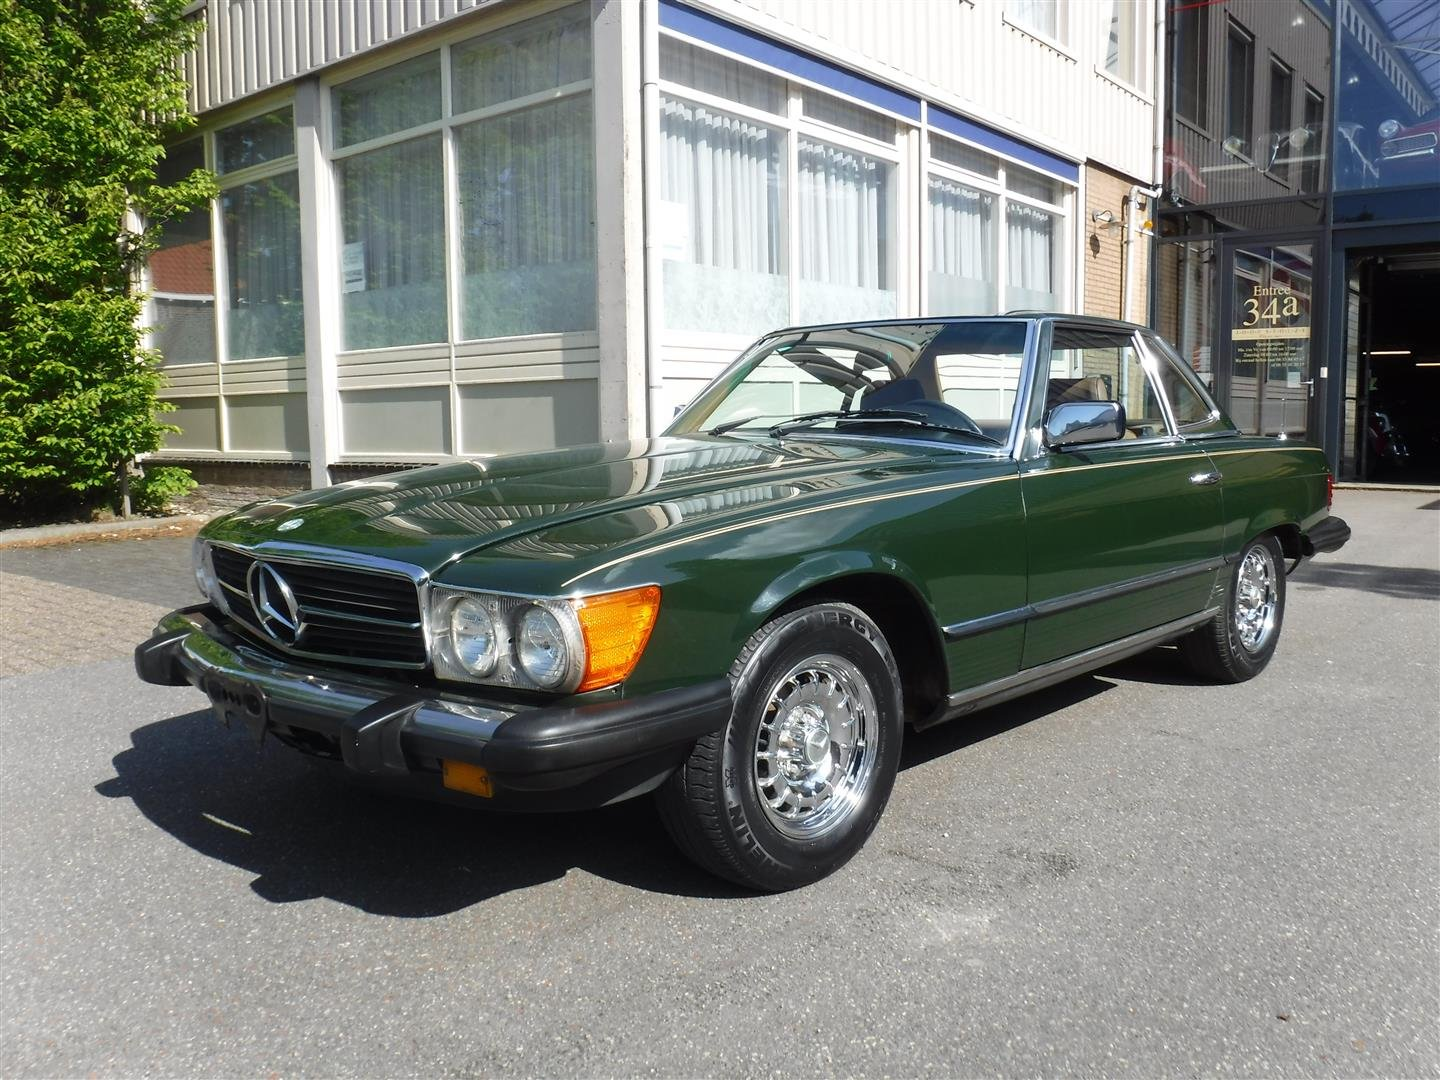 1983 Mercedes Benz 380SL roadster '83 For Sale (picture 1 of 6)